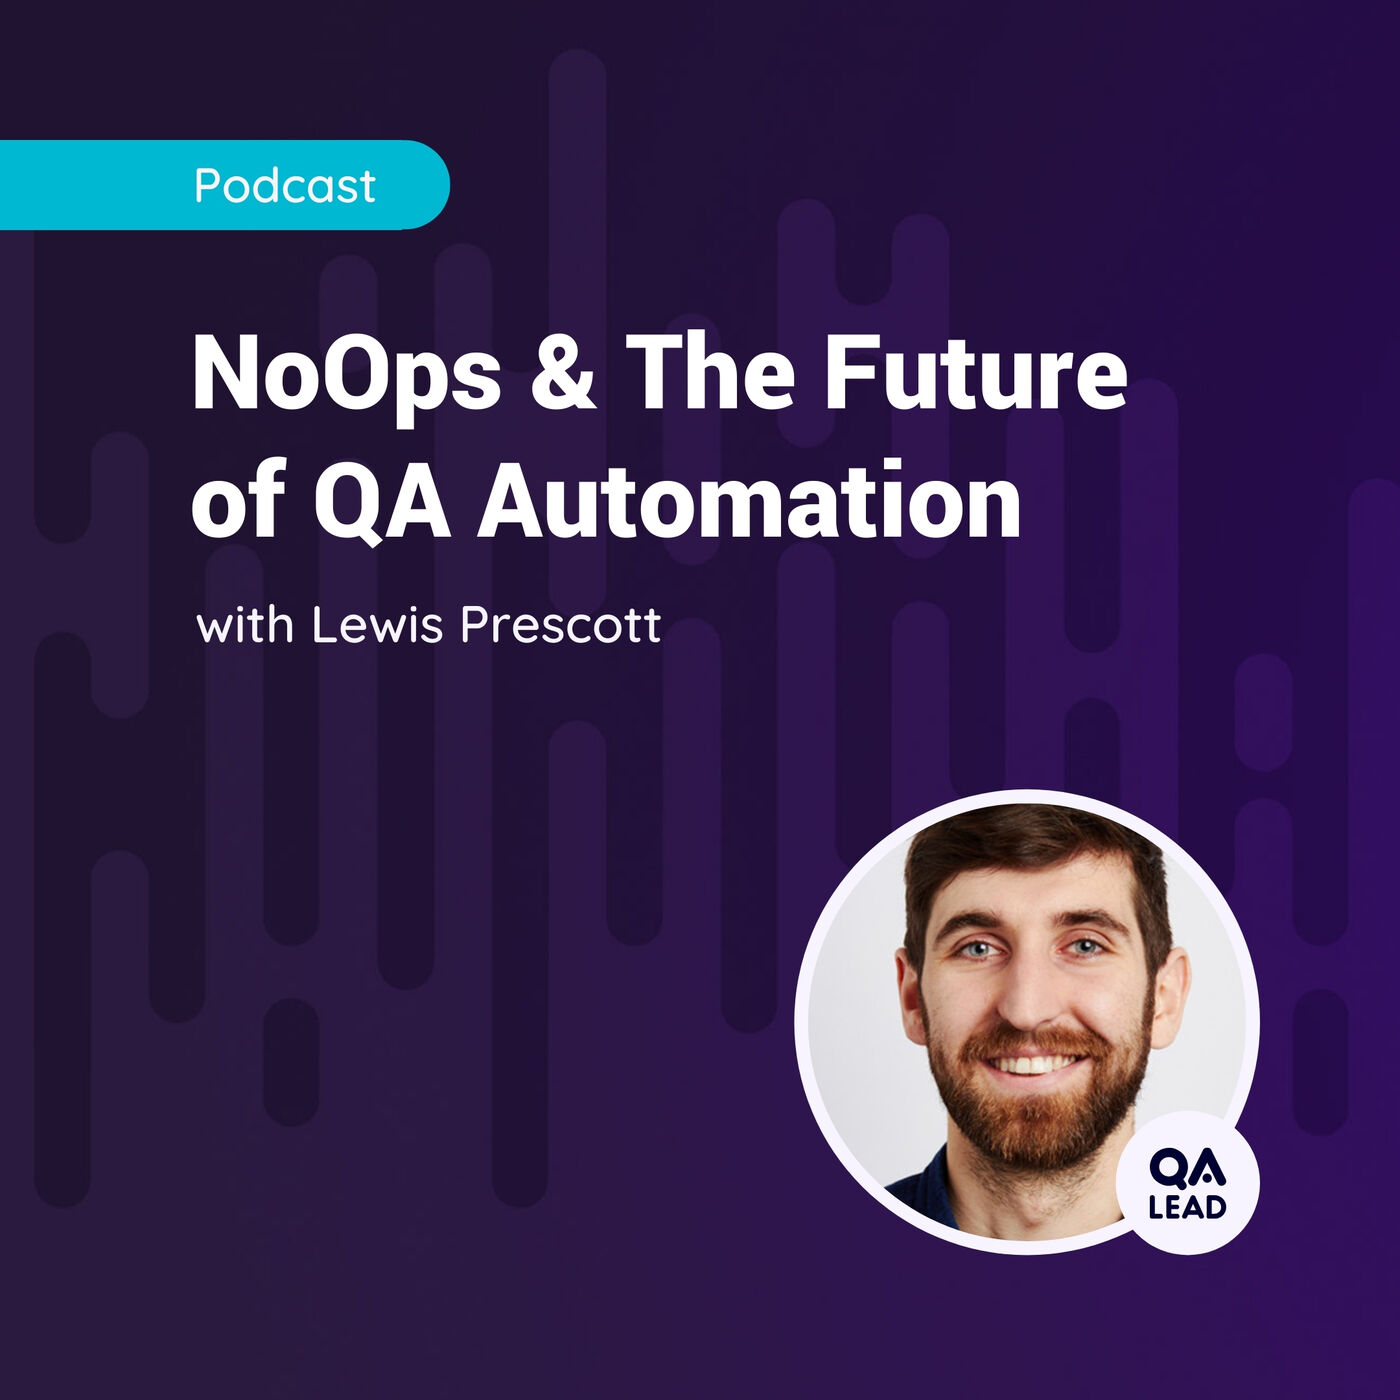 NoOps & The Future Of QA Automation (with Lewis Prescott from Cancer Research UK)